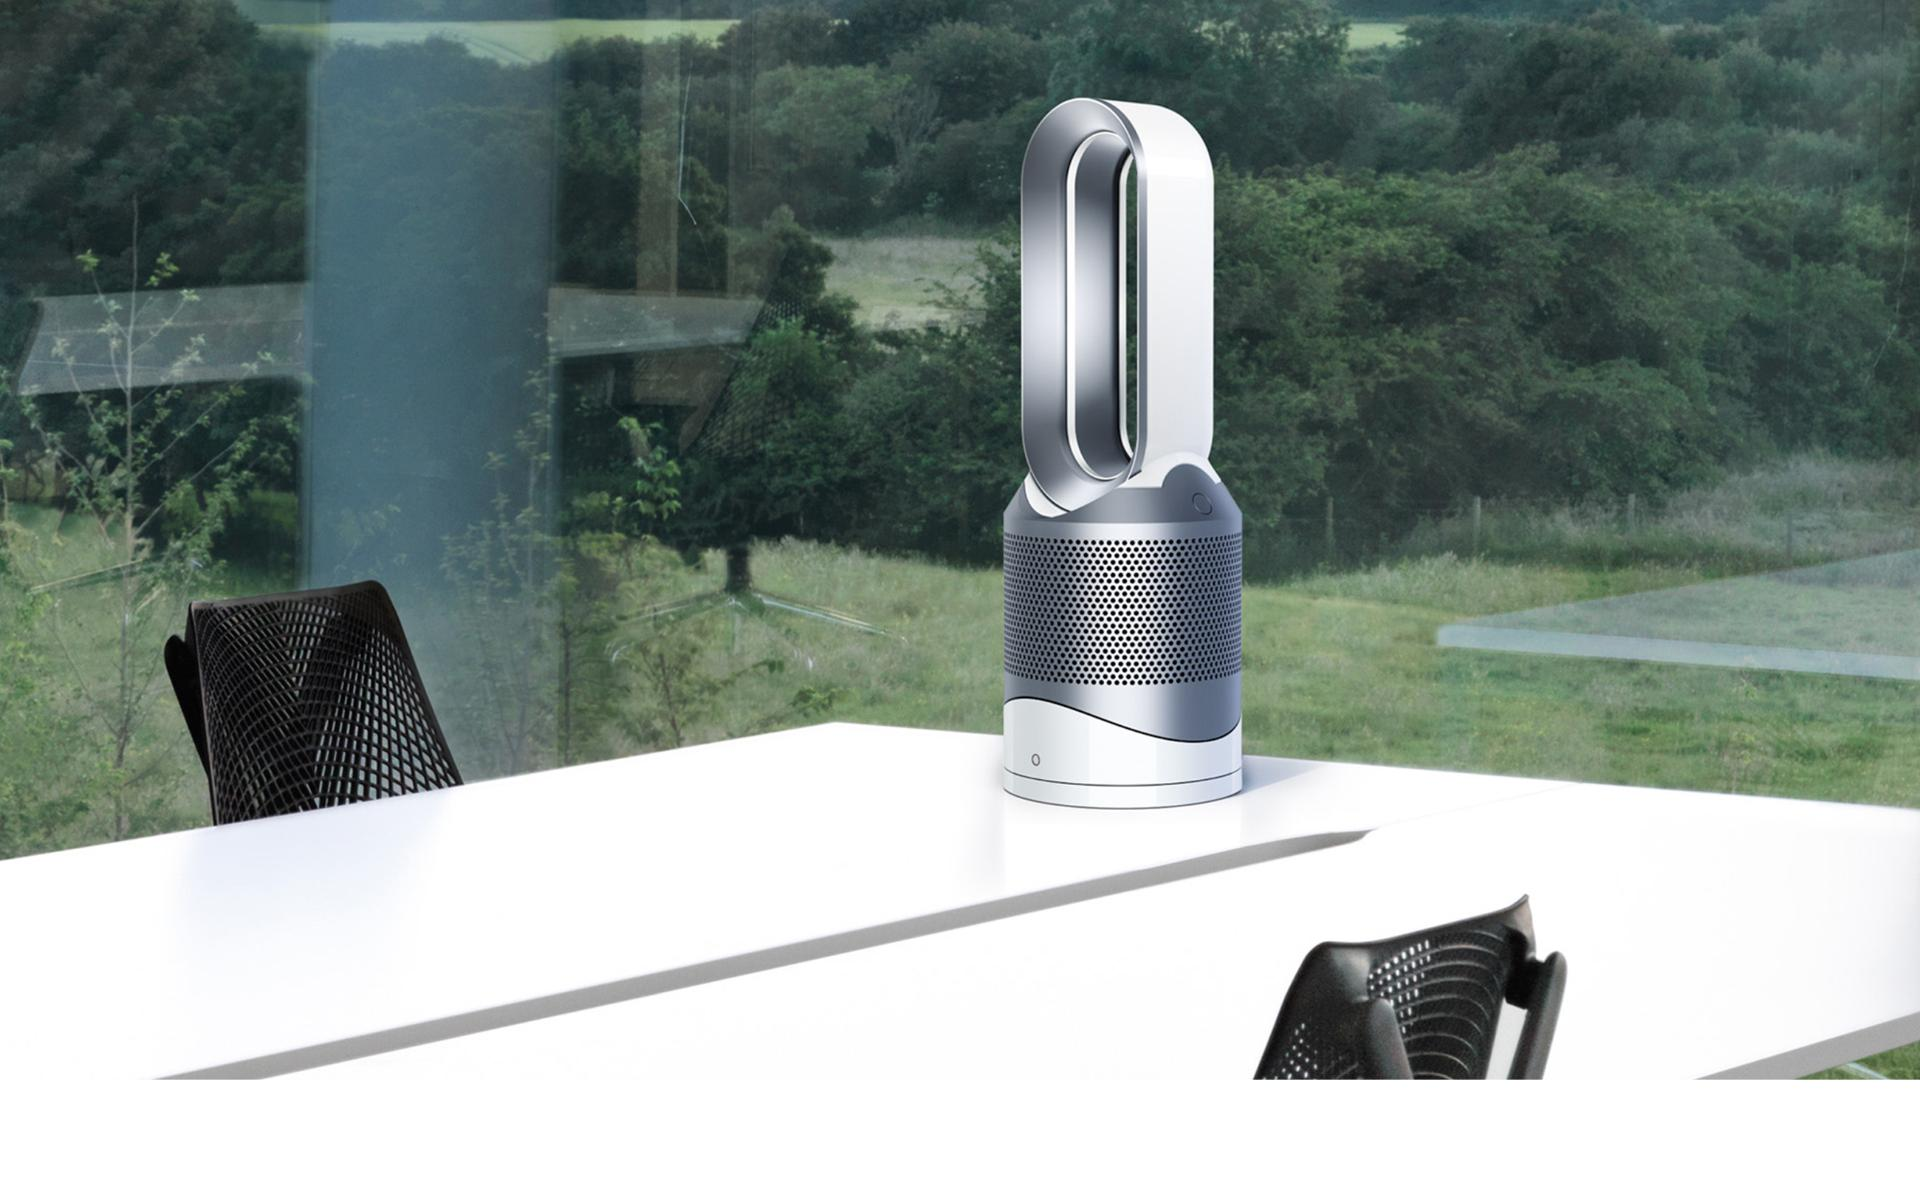 Dyson air purifier on desk